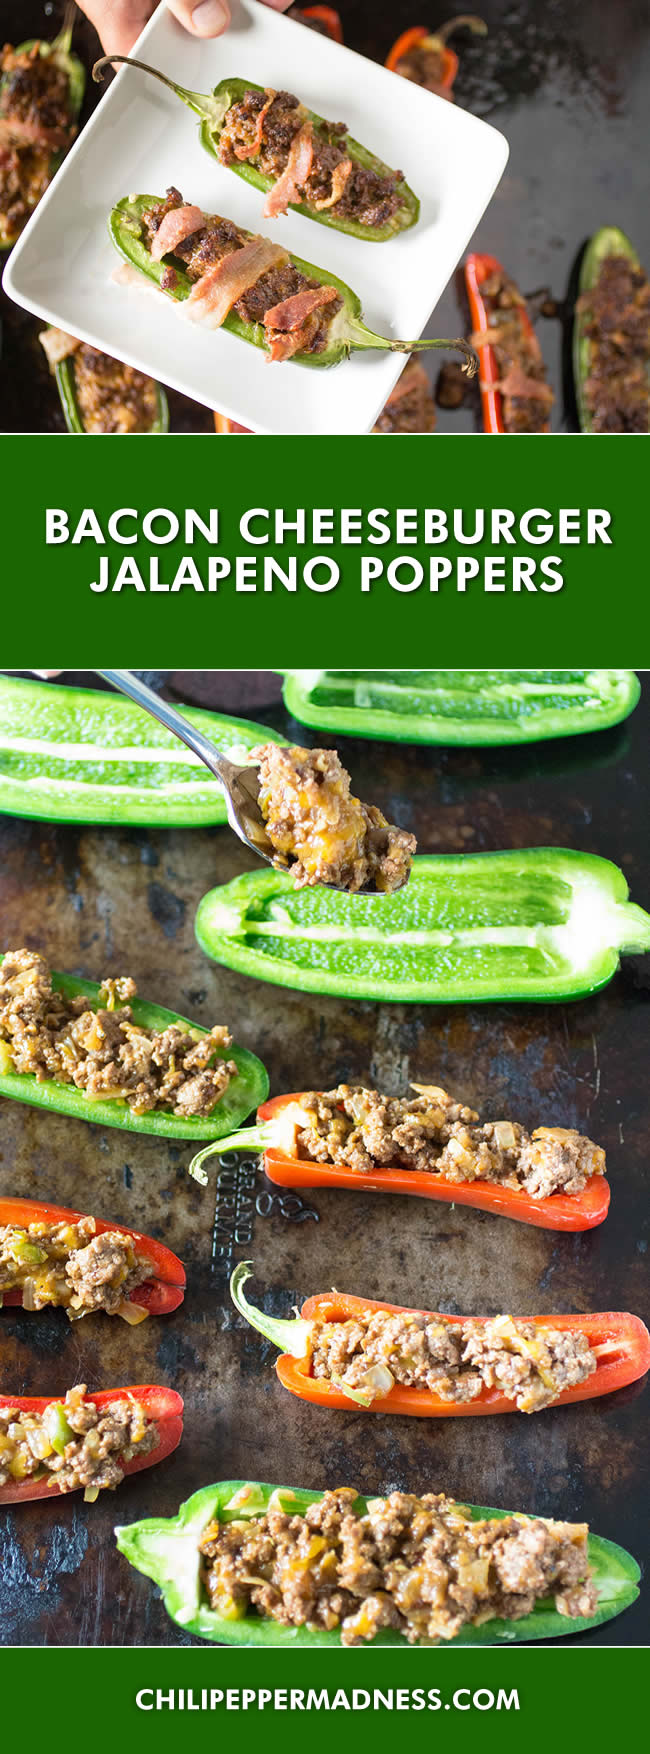 Bacon Cheeseburger Jalapeno Poppers - Recipe